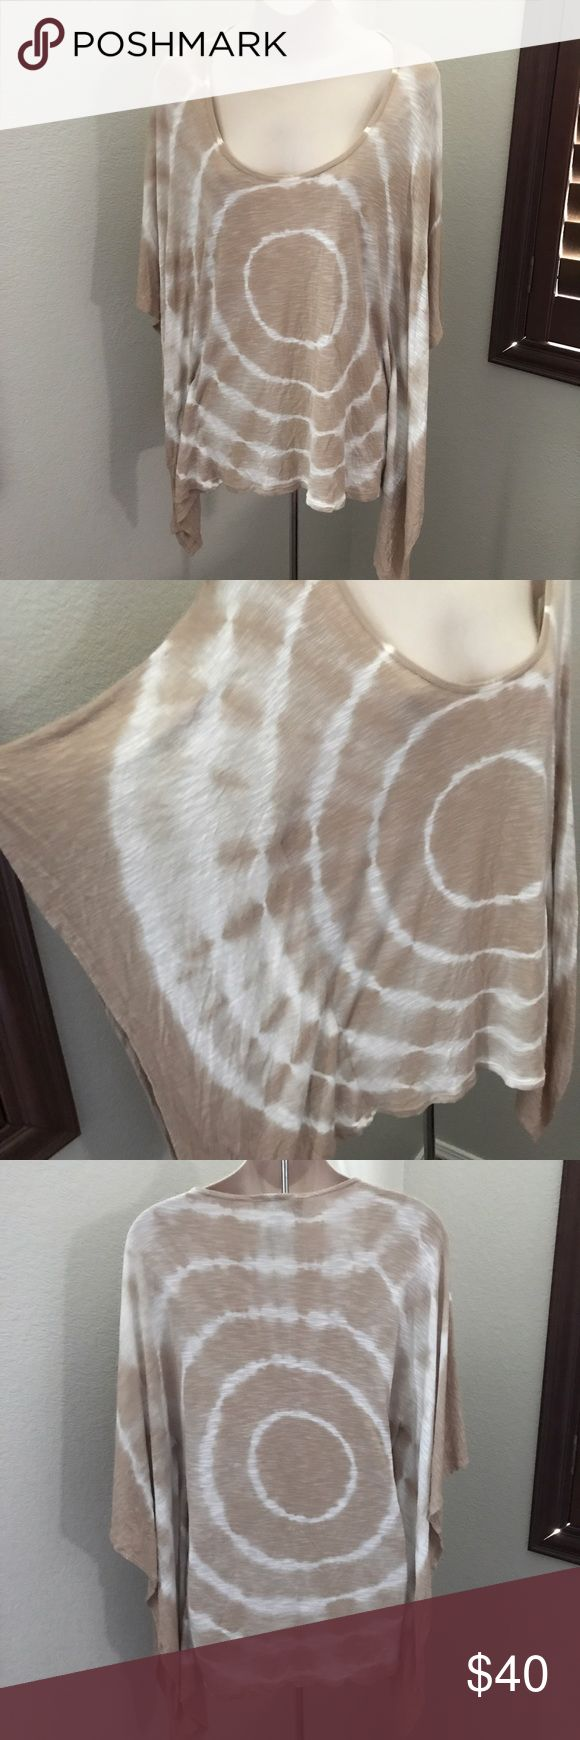 "Young Fabulous & Broke Tie Dye Batwing Shirt XS This is a Young Fabulous and Broke tie dye shirt. Oversized fit with batwing sides. Size extra small. Beige and white. Bust 38"" length 29"". Never worn. Perfect condition. Young Fabulous & Broke Tops Tees - Short Sleeve"